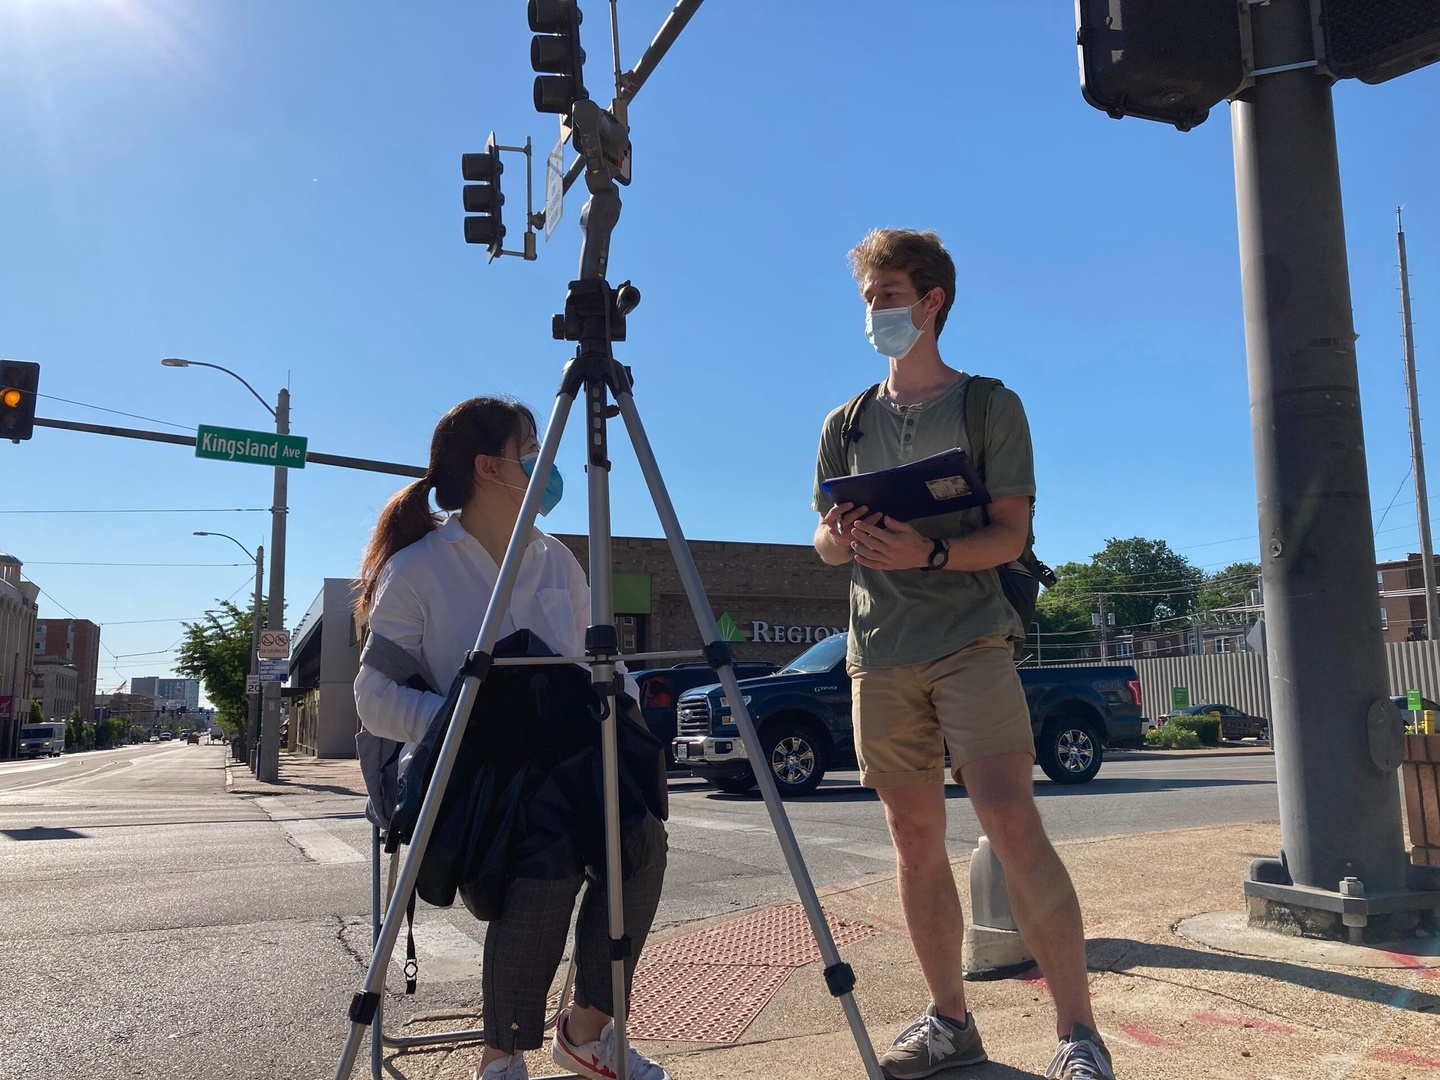 Two students at the intersection of streets, with a street sign for Kingland on a stoplight overhead. One student, seated behind a tripod, is speaking to the other student who is standing. Both are wearing face masks.